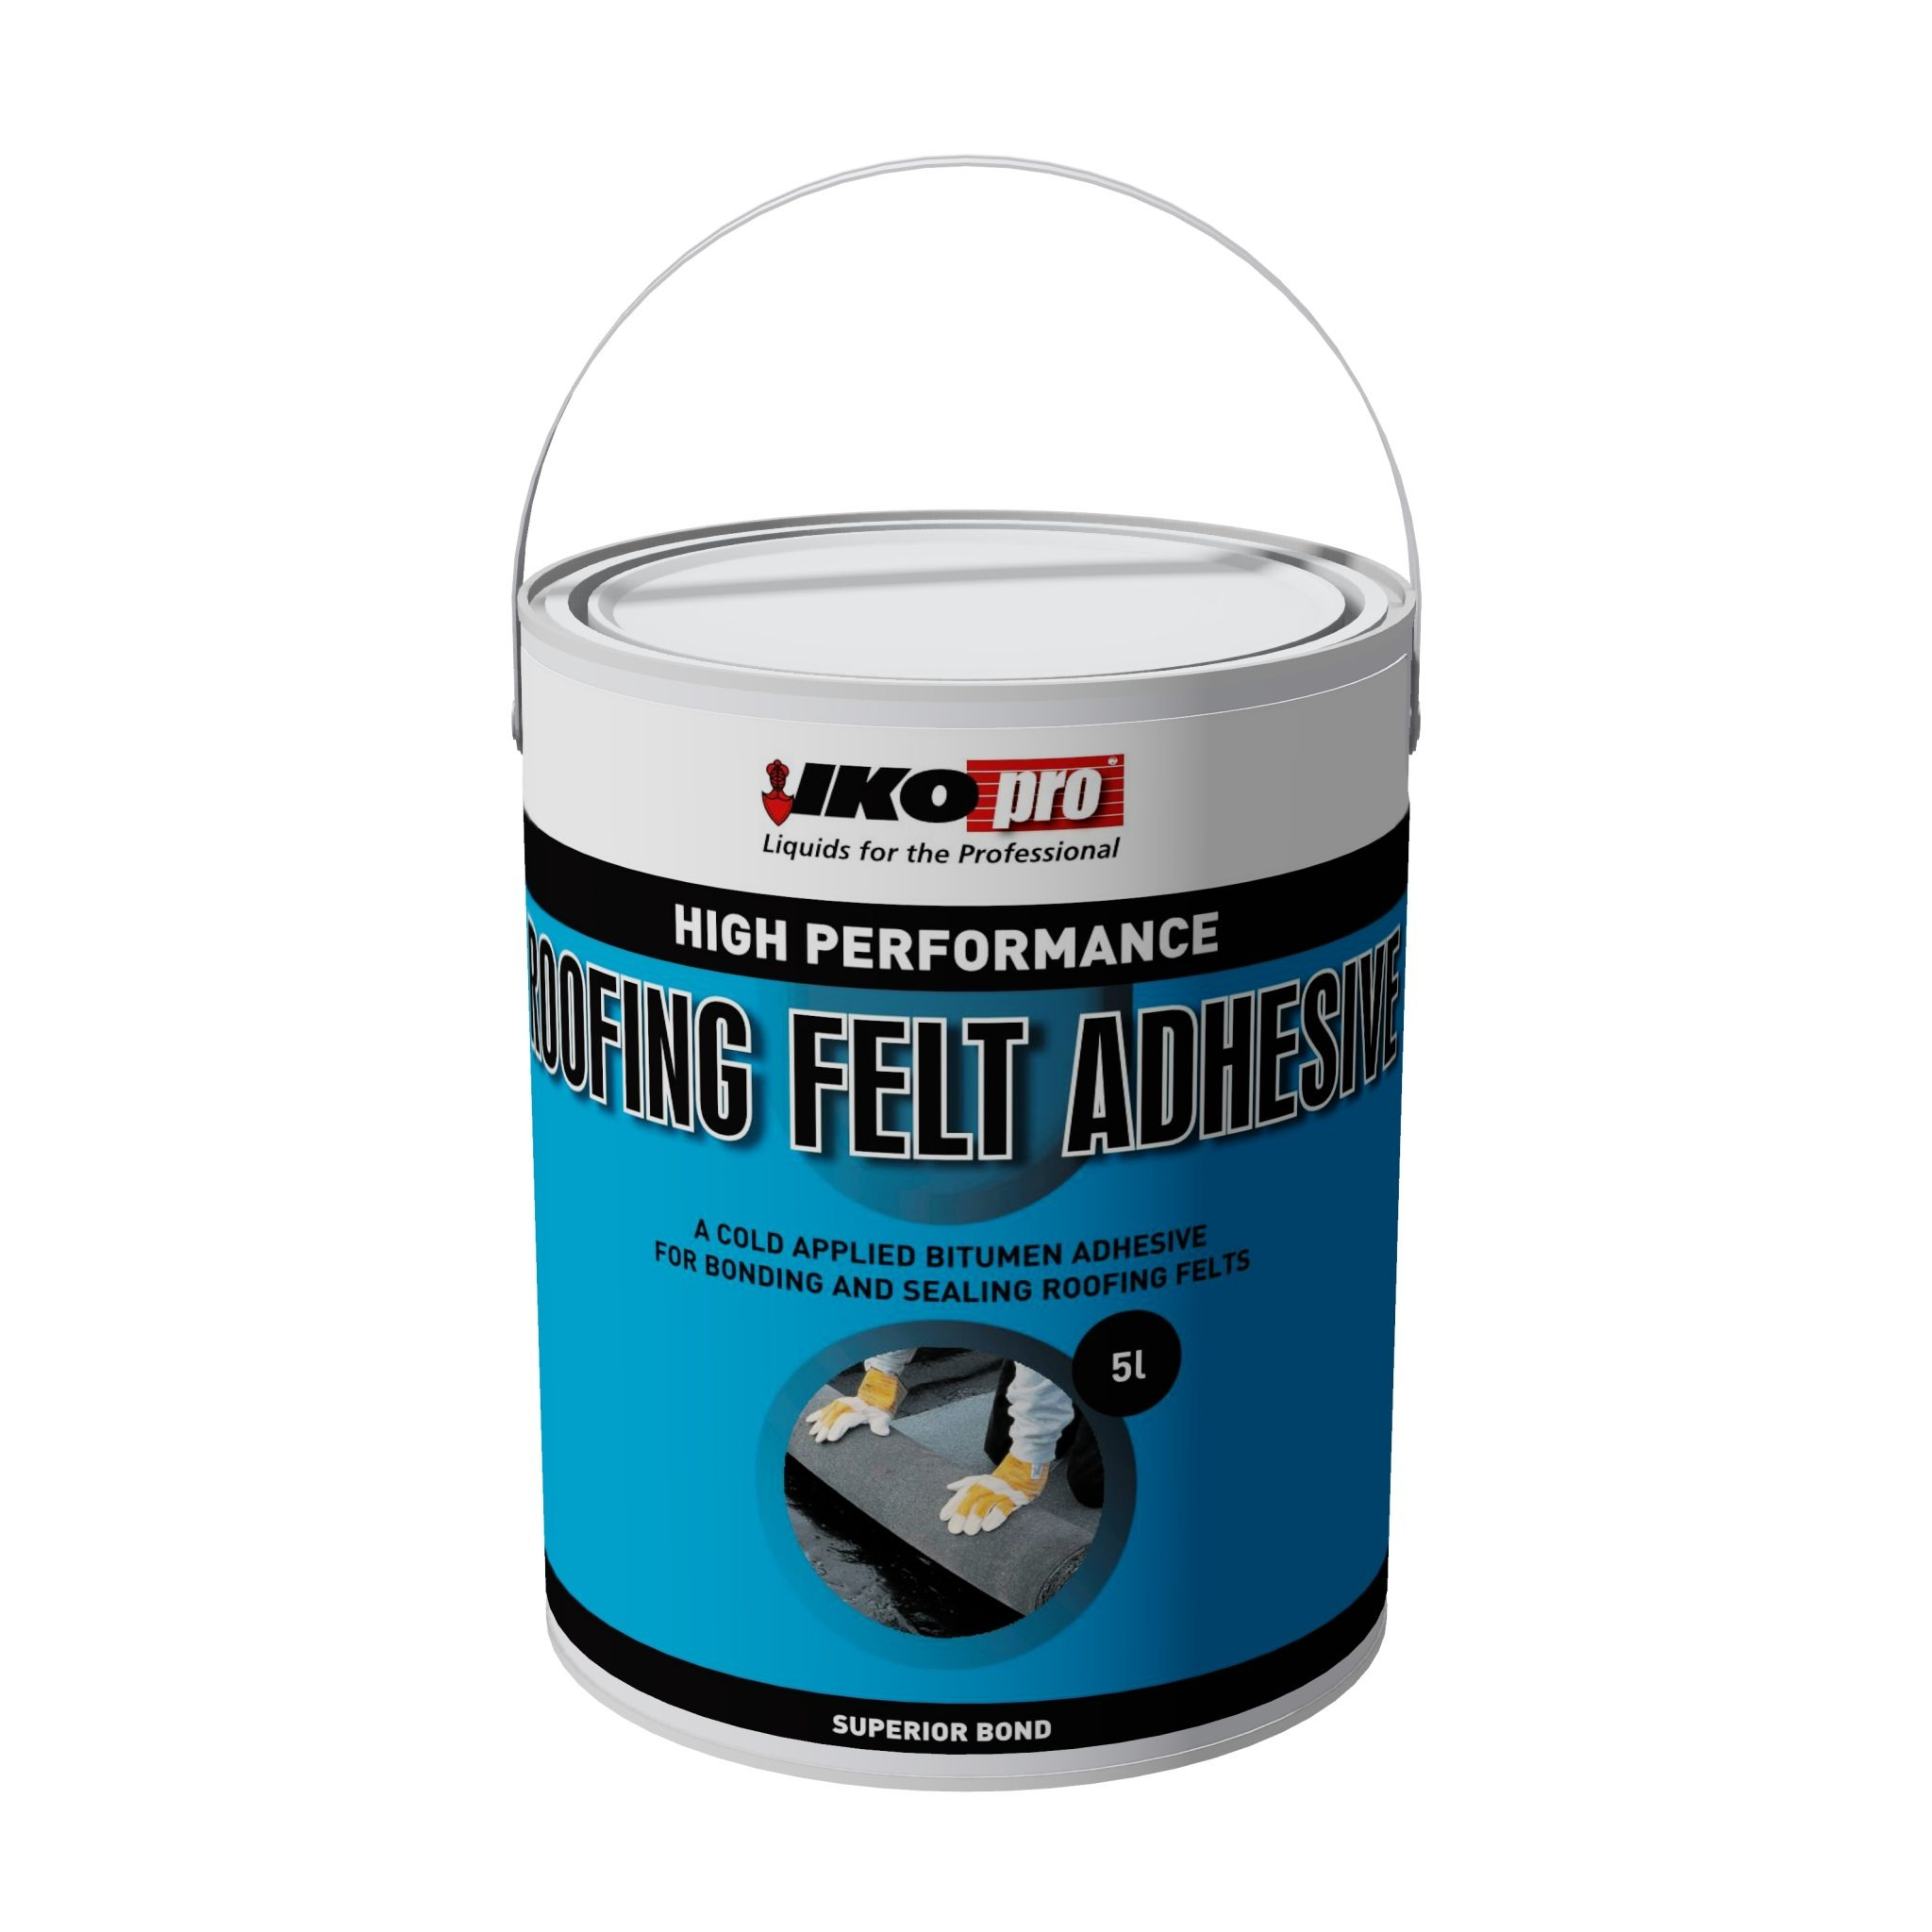 Iko-Pro Roofing Felt Adhesive 5Ltr